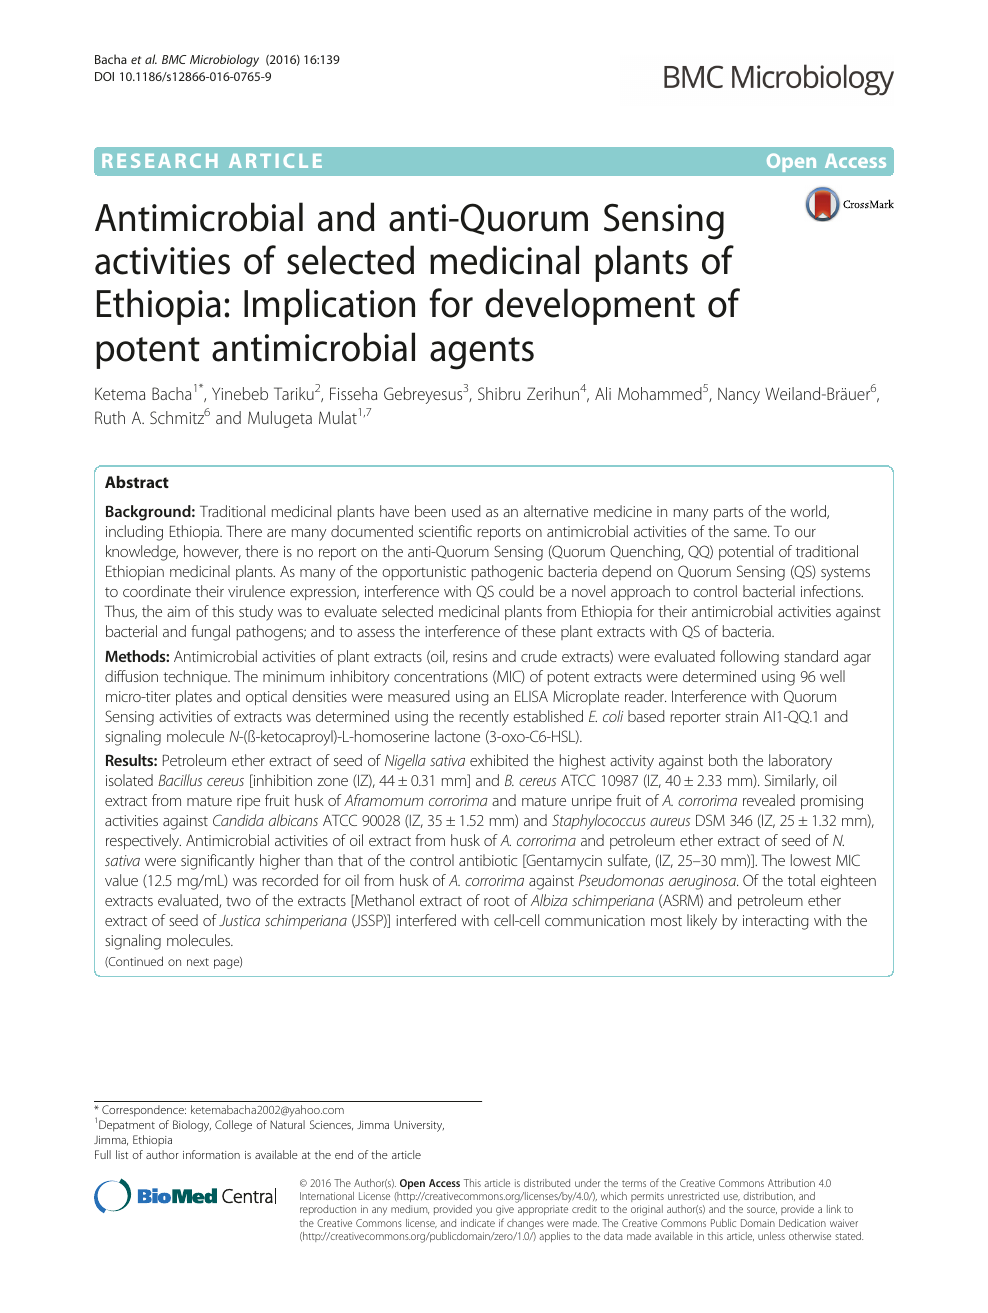 Antimicrobial and anti-Quorum Sensing activities of selected